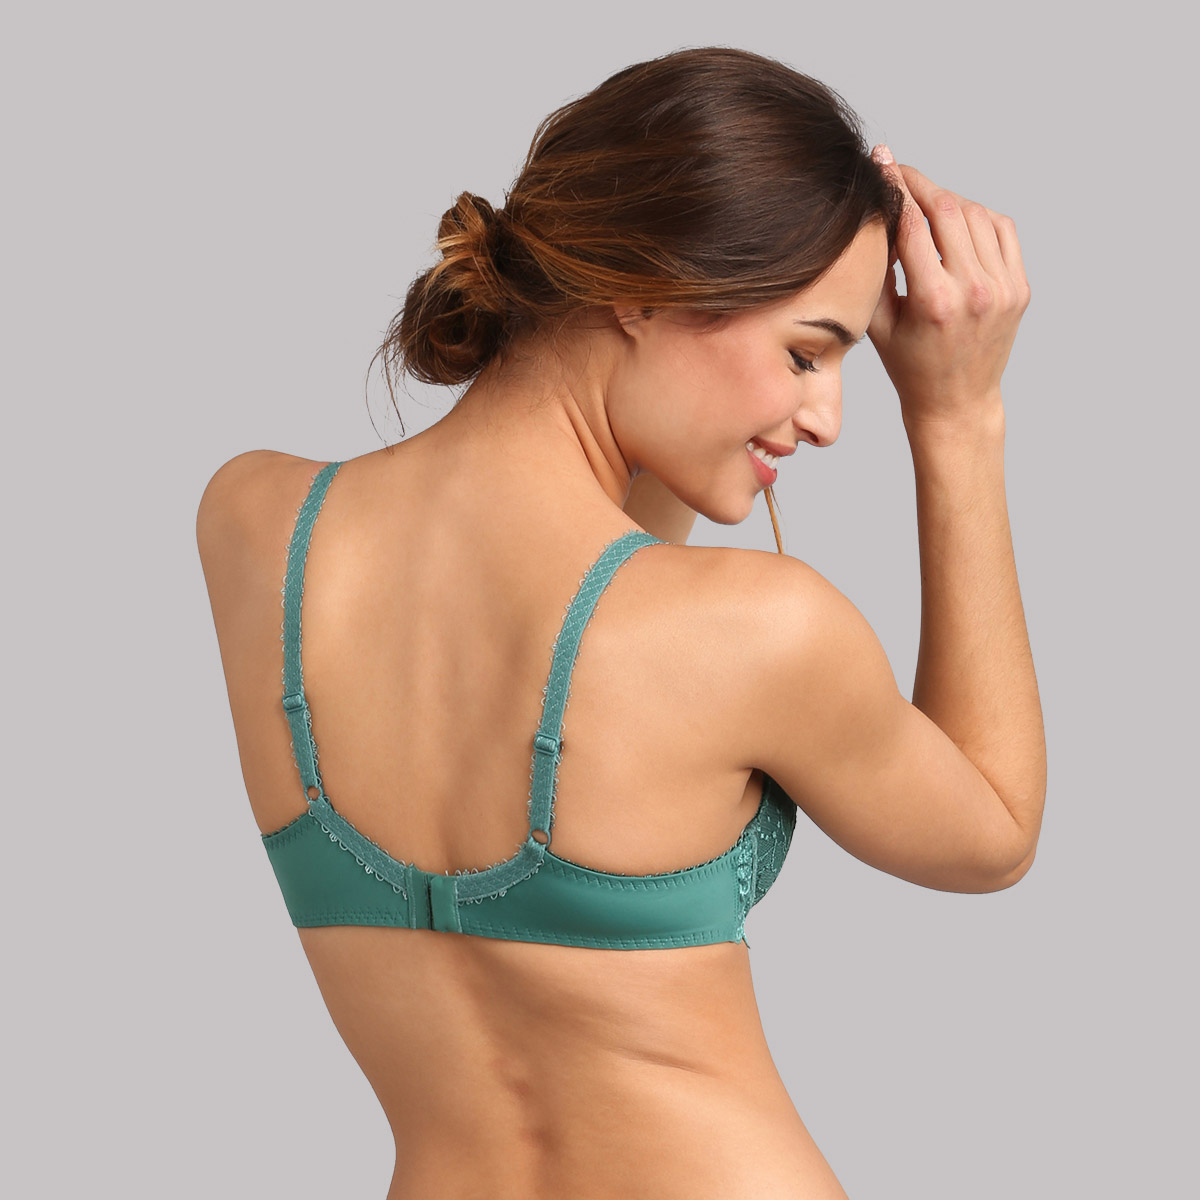 Underwired bra in deep green palm - Flower Elegance, , PLAYTEX